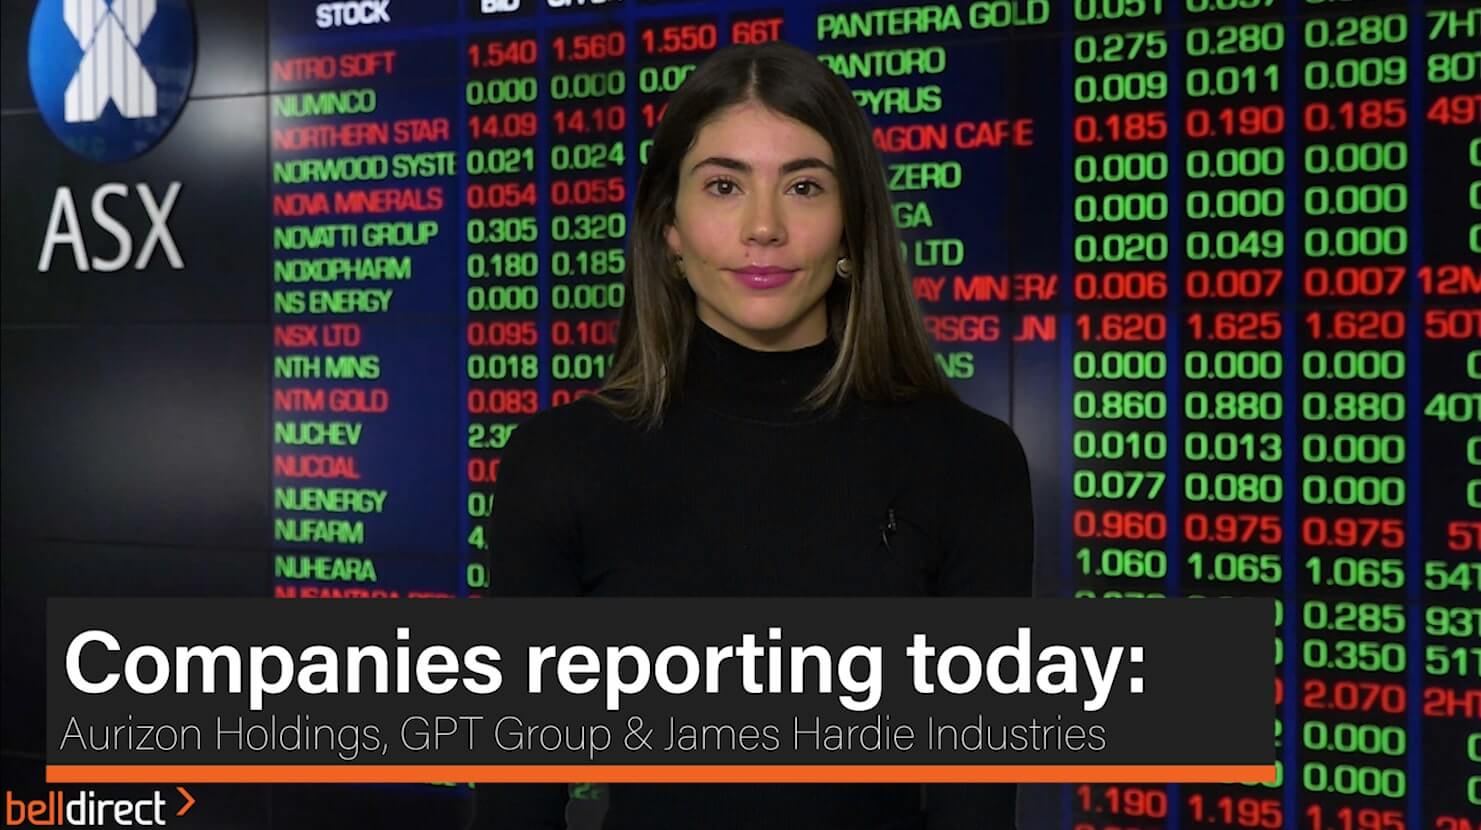 Companies reporting today